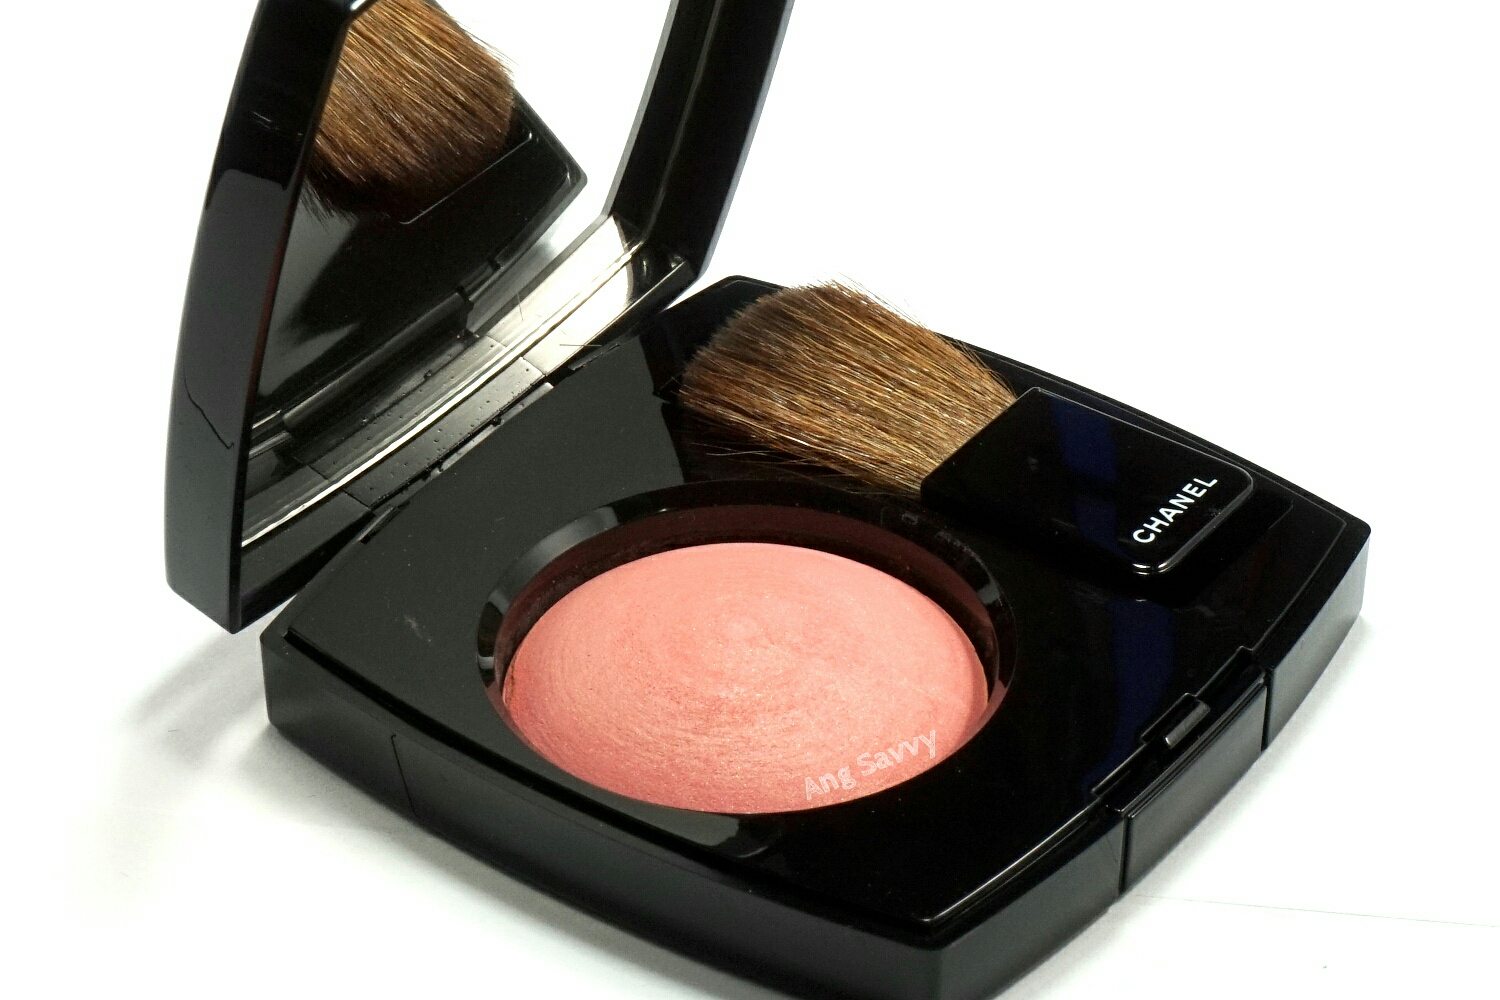 Chanel Joues Contraste Blush 72 Rose Initiale Swatch